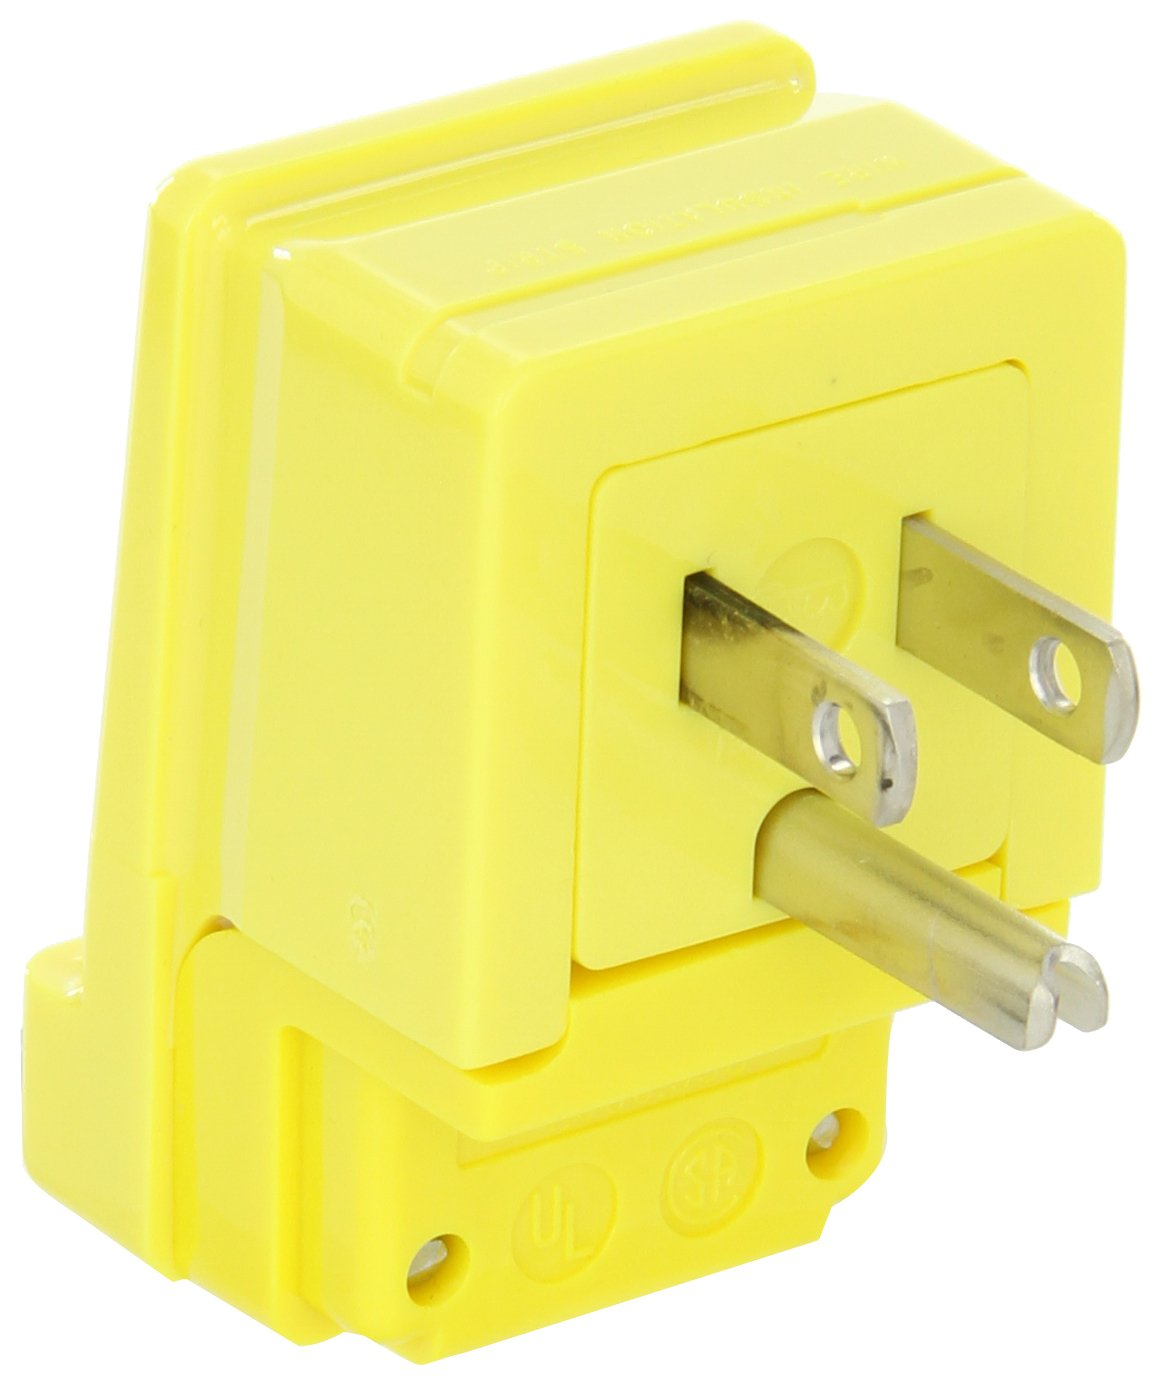 Woodhead 14R47 Safeway Plug, Industrial Duty, Right Angle, Straight Blade, 2 Poles, 3 Wires, NEMA 5-15 Configuration, Nylon, Yellow, 15A Current, 125V Voltage